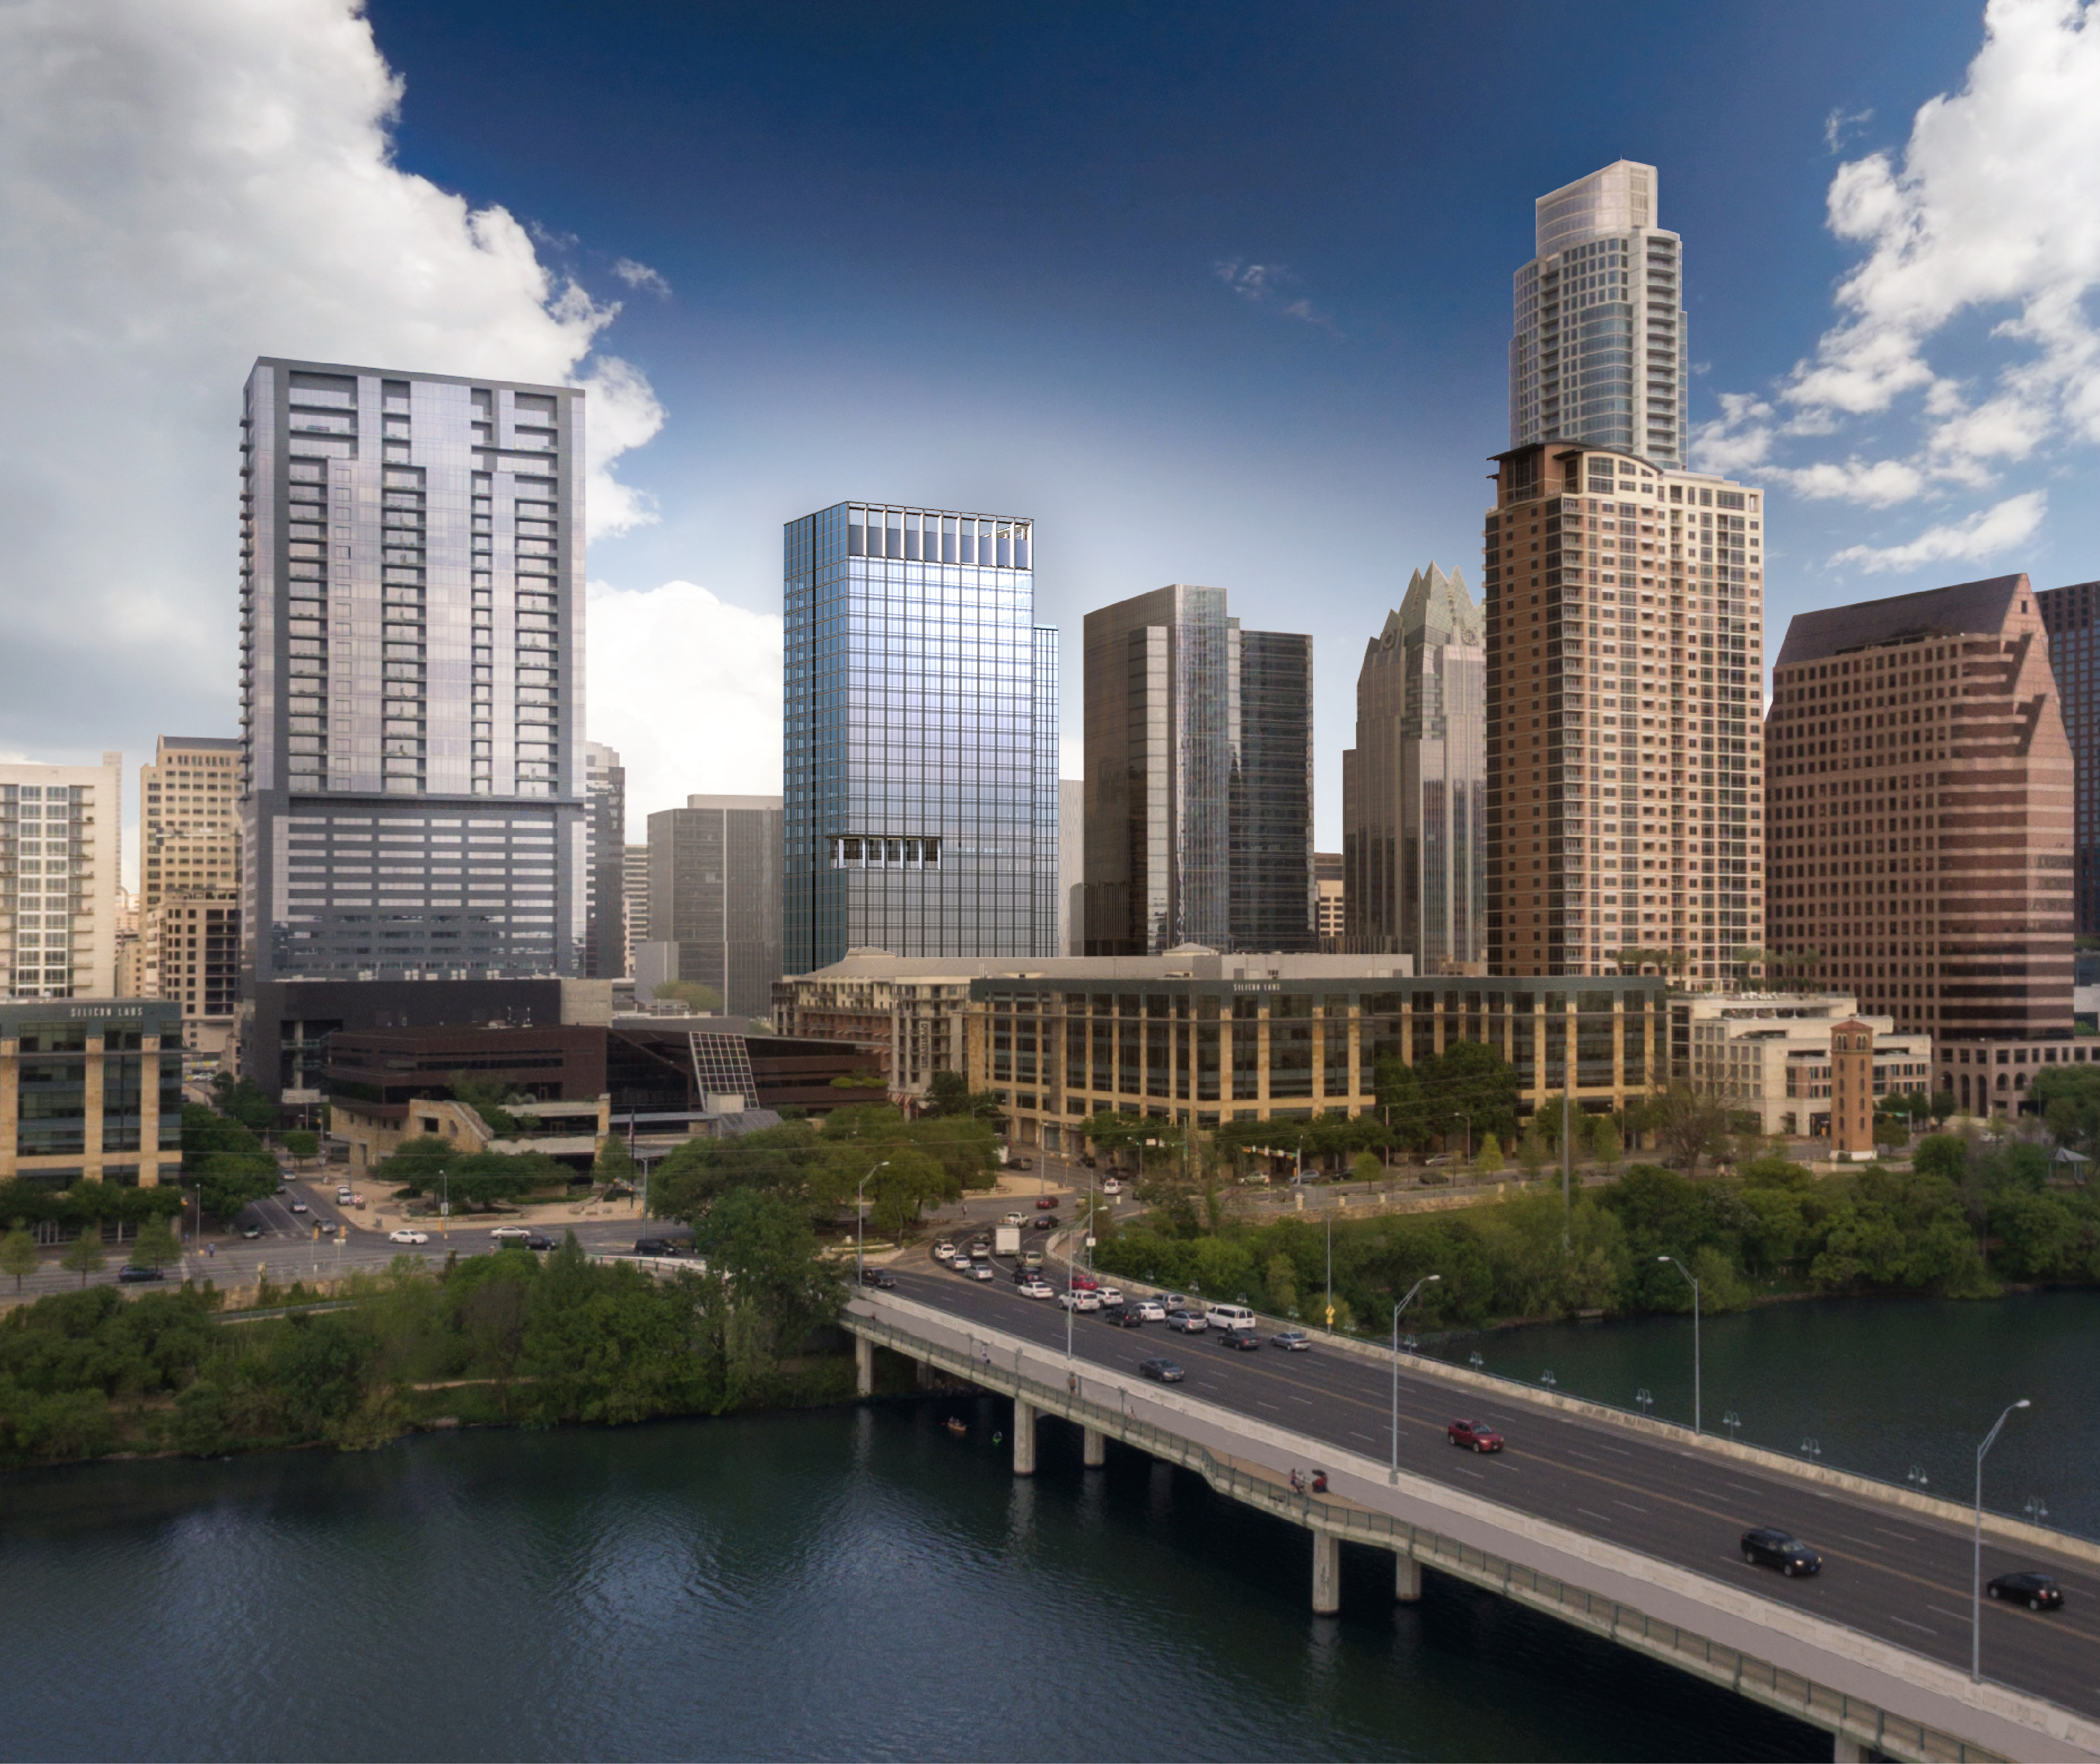 Exterior view of design proposal for 300 Colorado, premier properties in downtown Austin, situated close to a bridge.